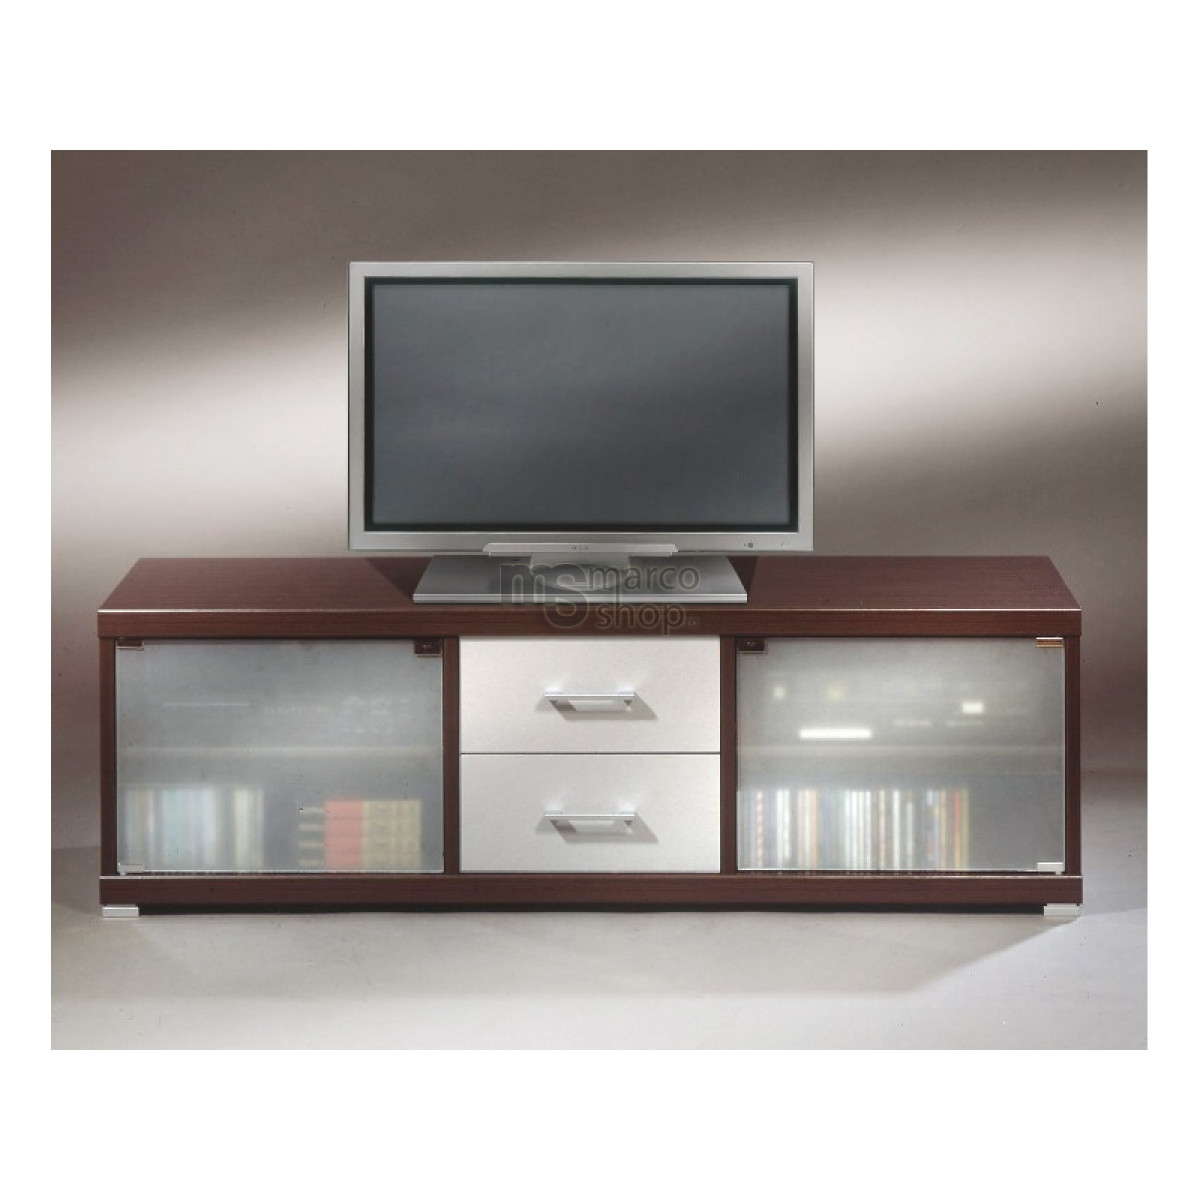 Mic mobilier suport tv geam comode si noptiere for Mobilier tv